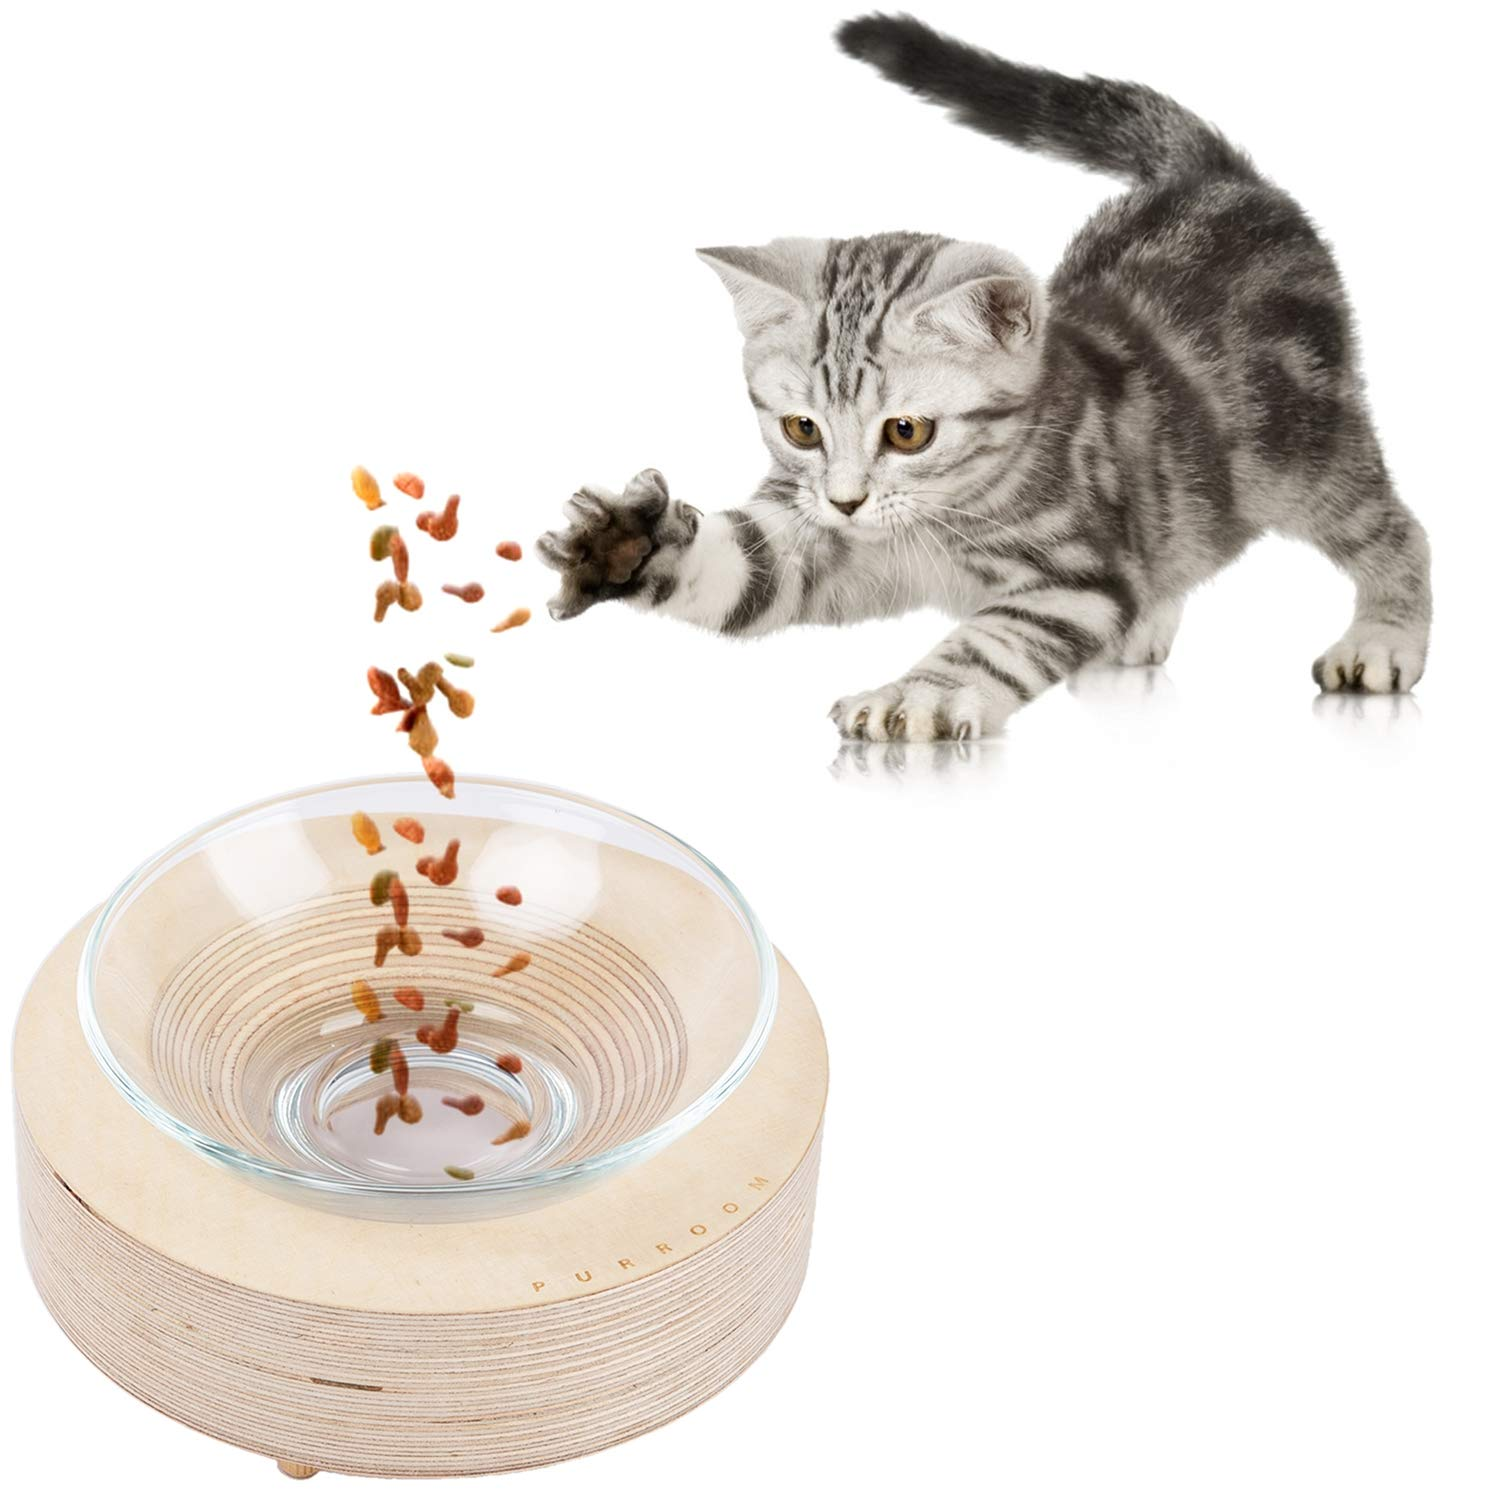 PURROMM Wooden round table for little cats dogs gift for pets Environmentally friendly tempered glass bowl